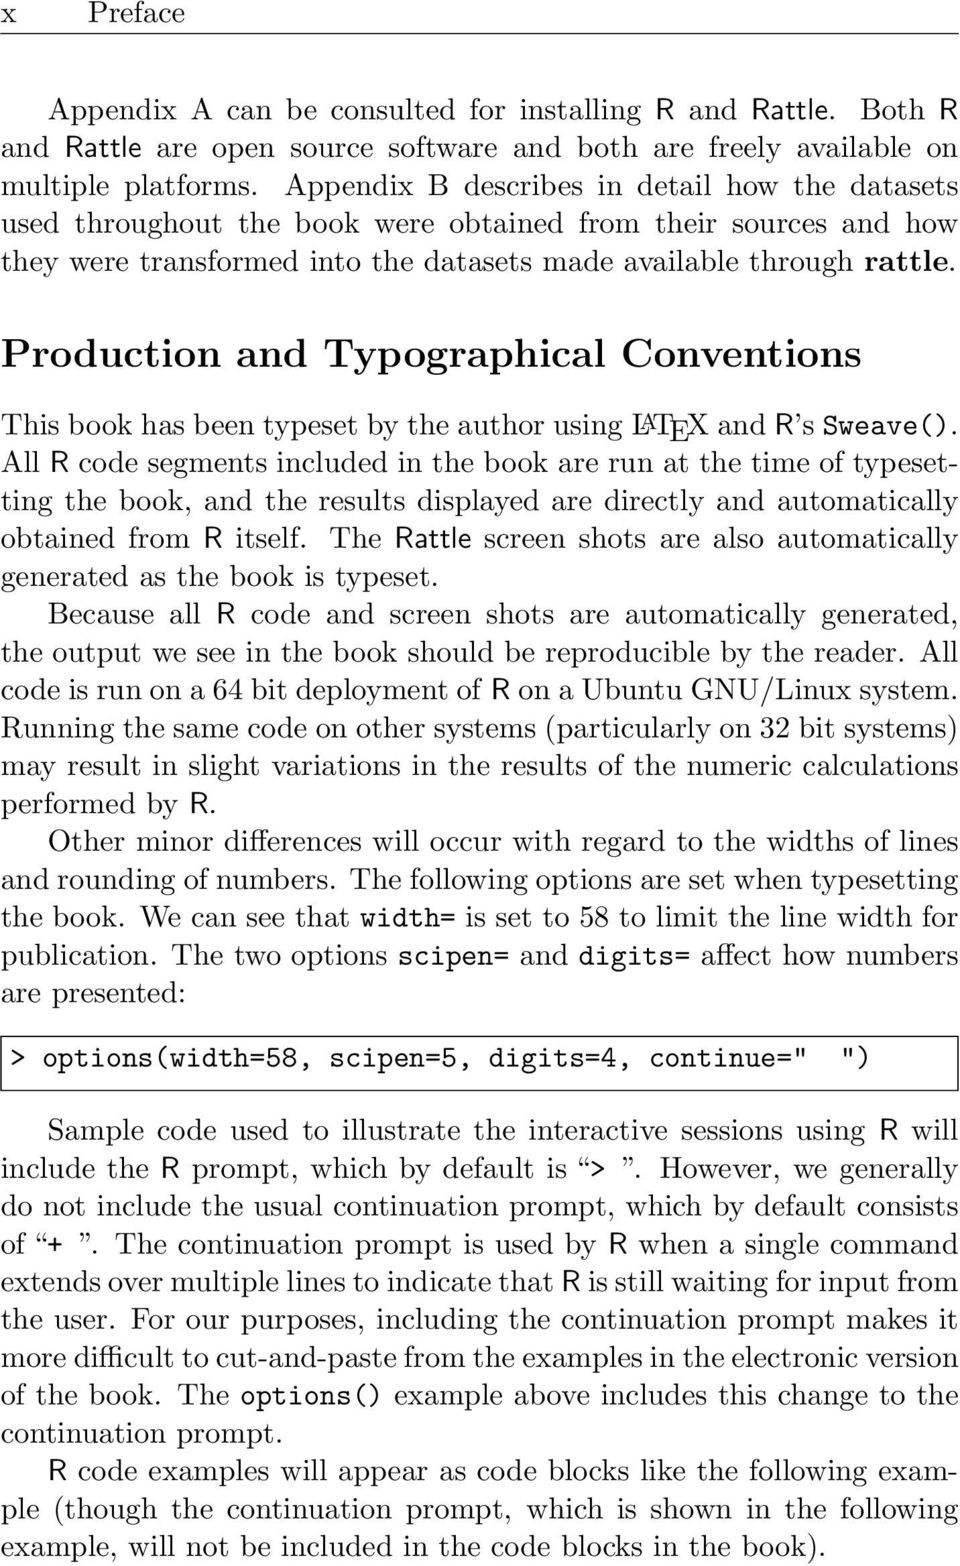 Production and Typographica Conventions This book has been typeset by the author using L A TEX and R s Sweave().